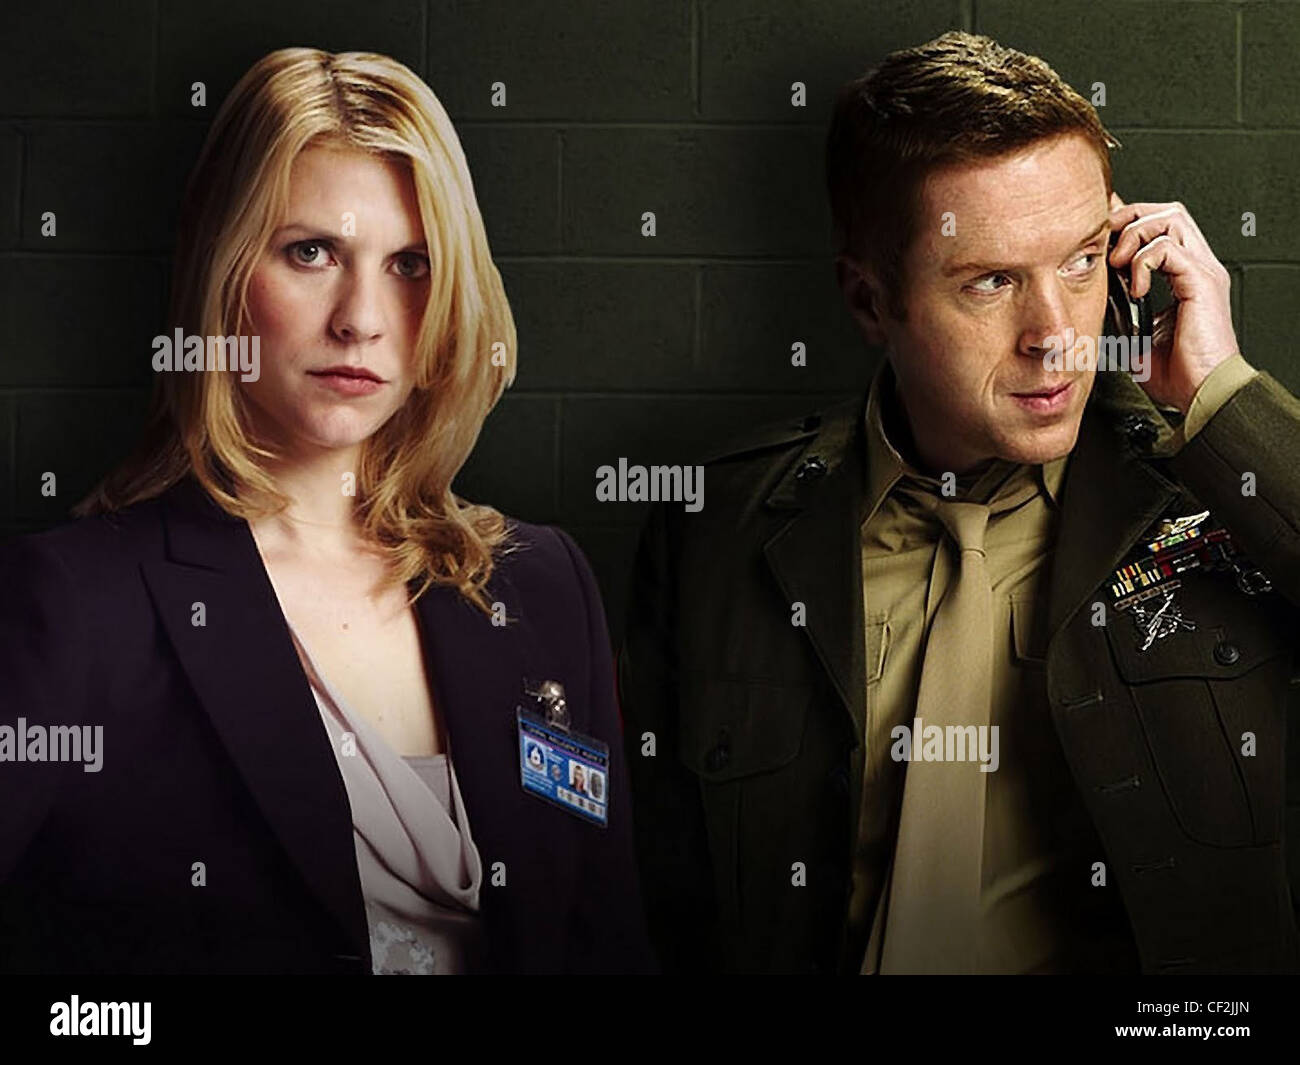 HOMELAND (TV) (2011) CLAIRE DANES, DAMIAN LEWIS 001 MOVIESTORE COLLECTION LTD - Stock Image